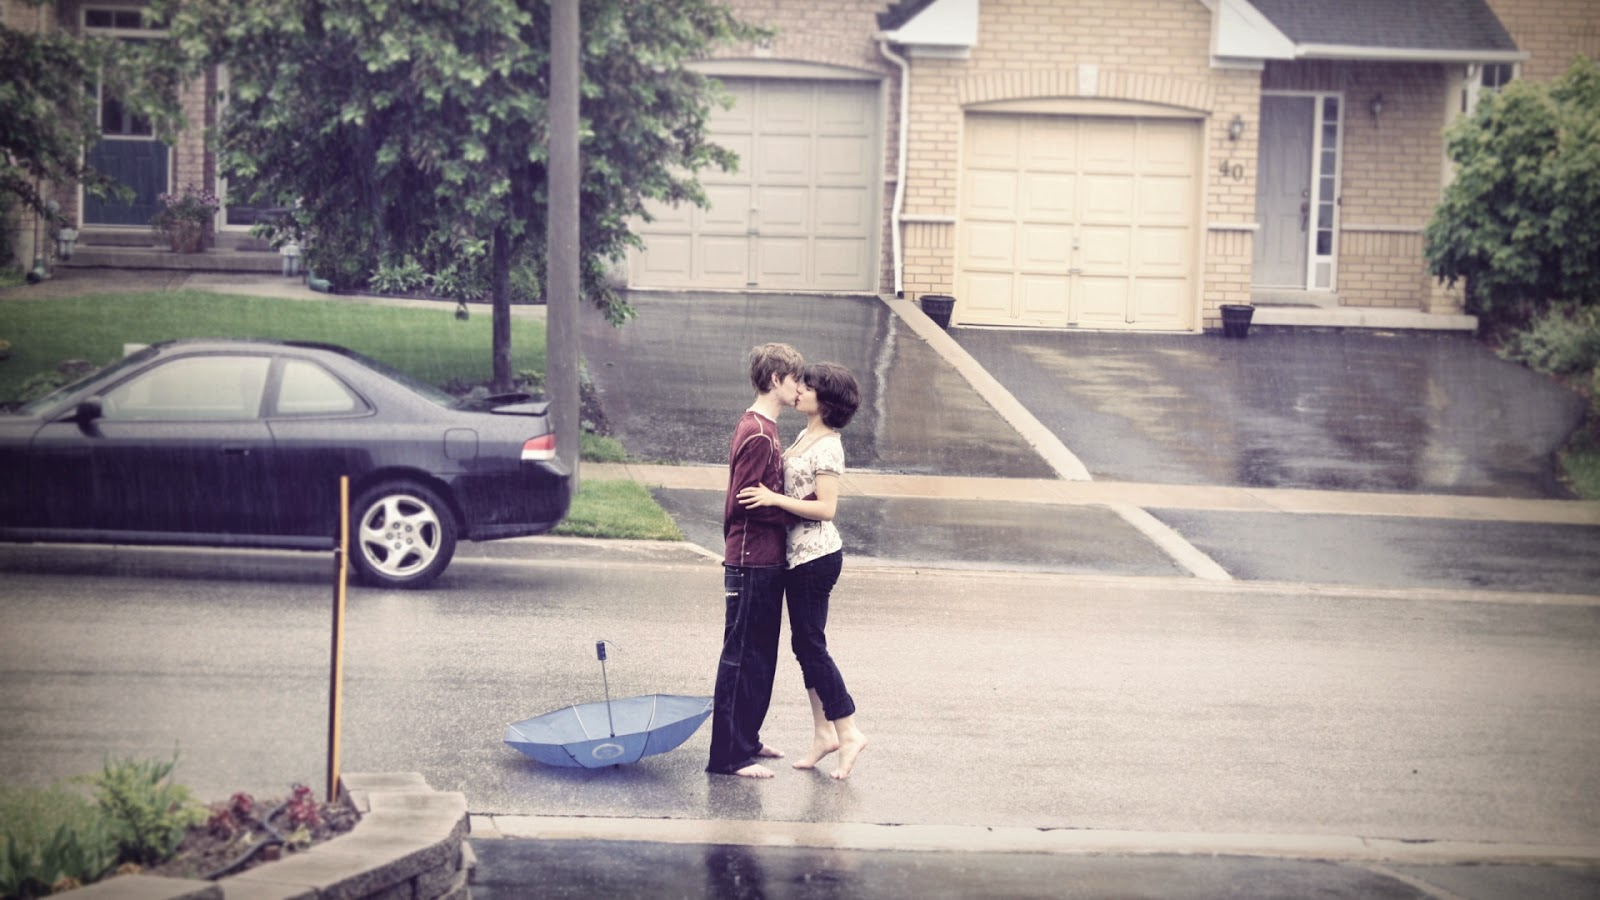 romantic couple in rain - kissing in rain